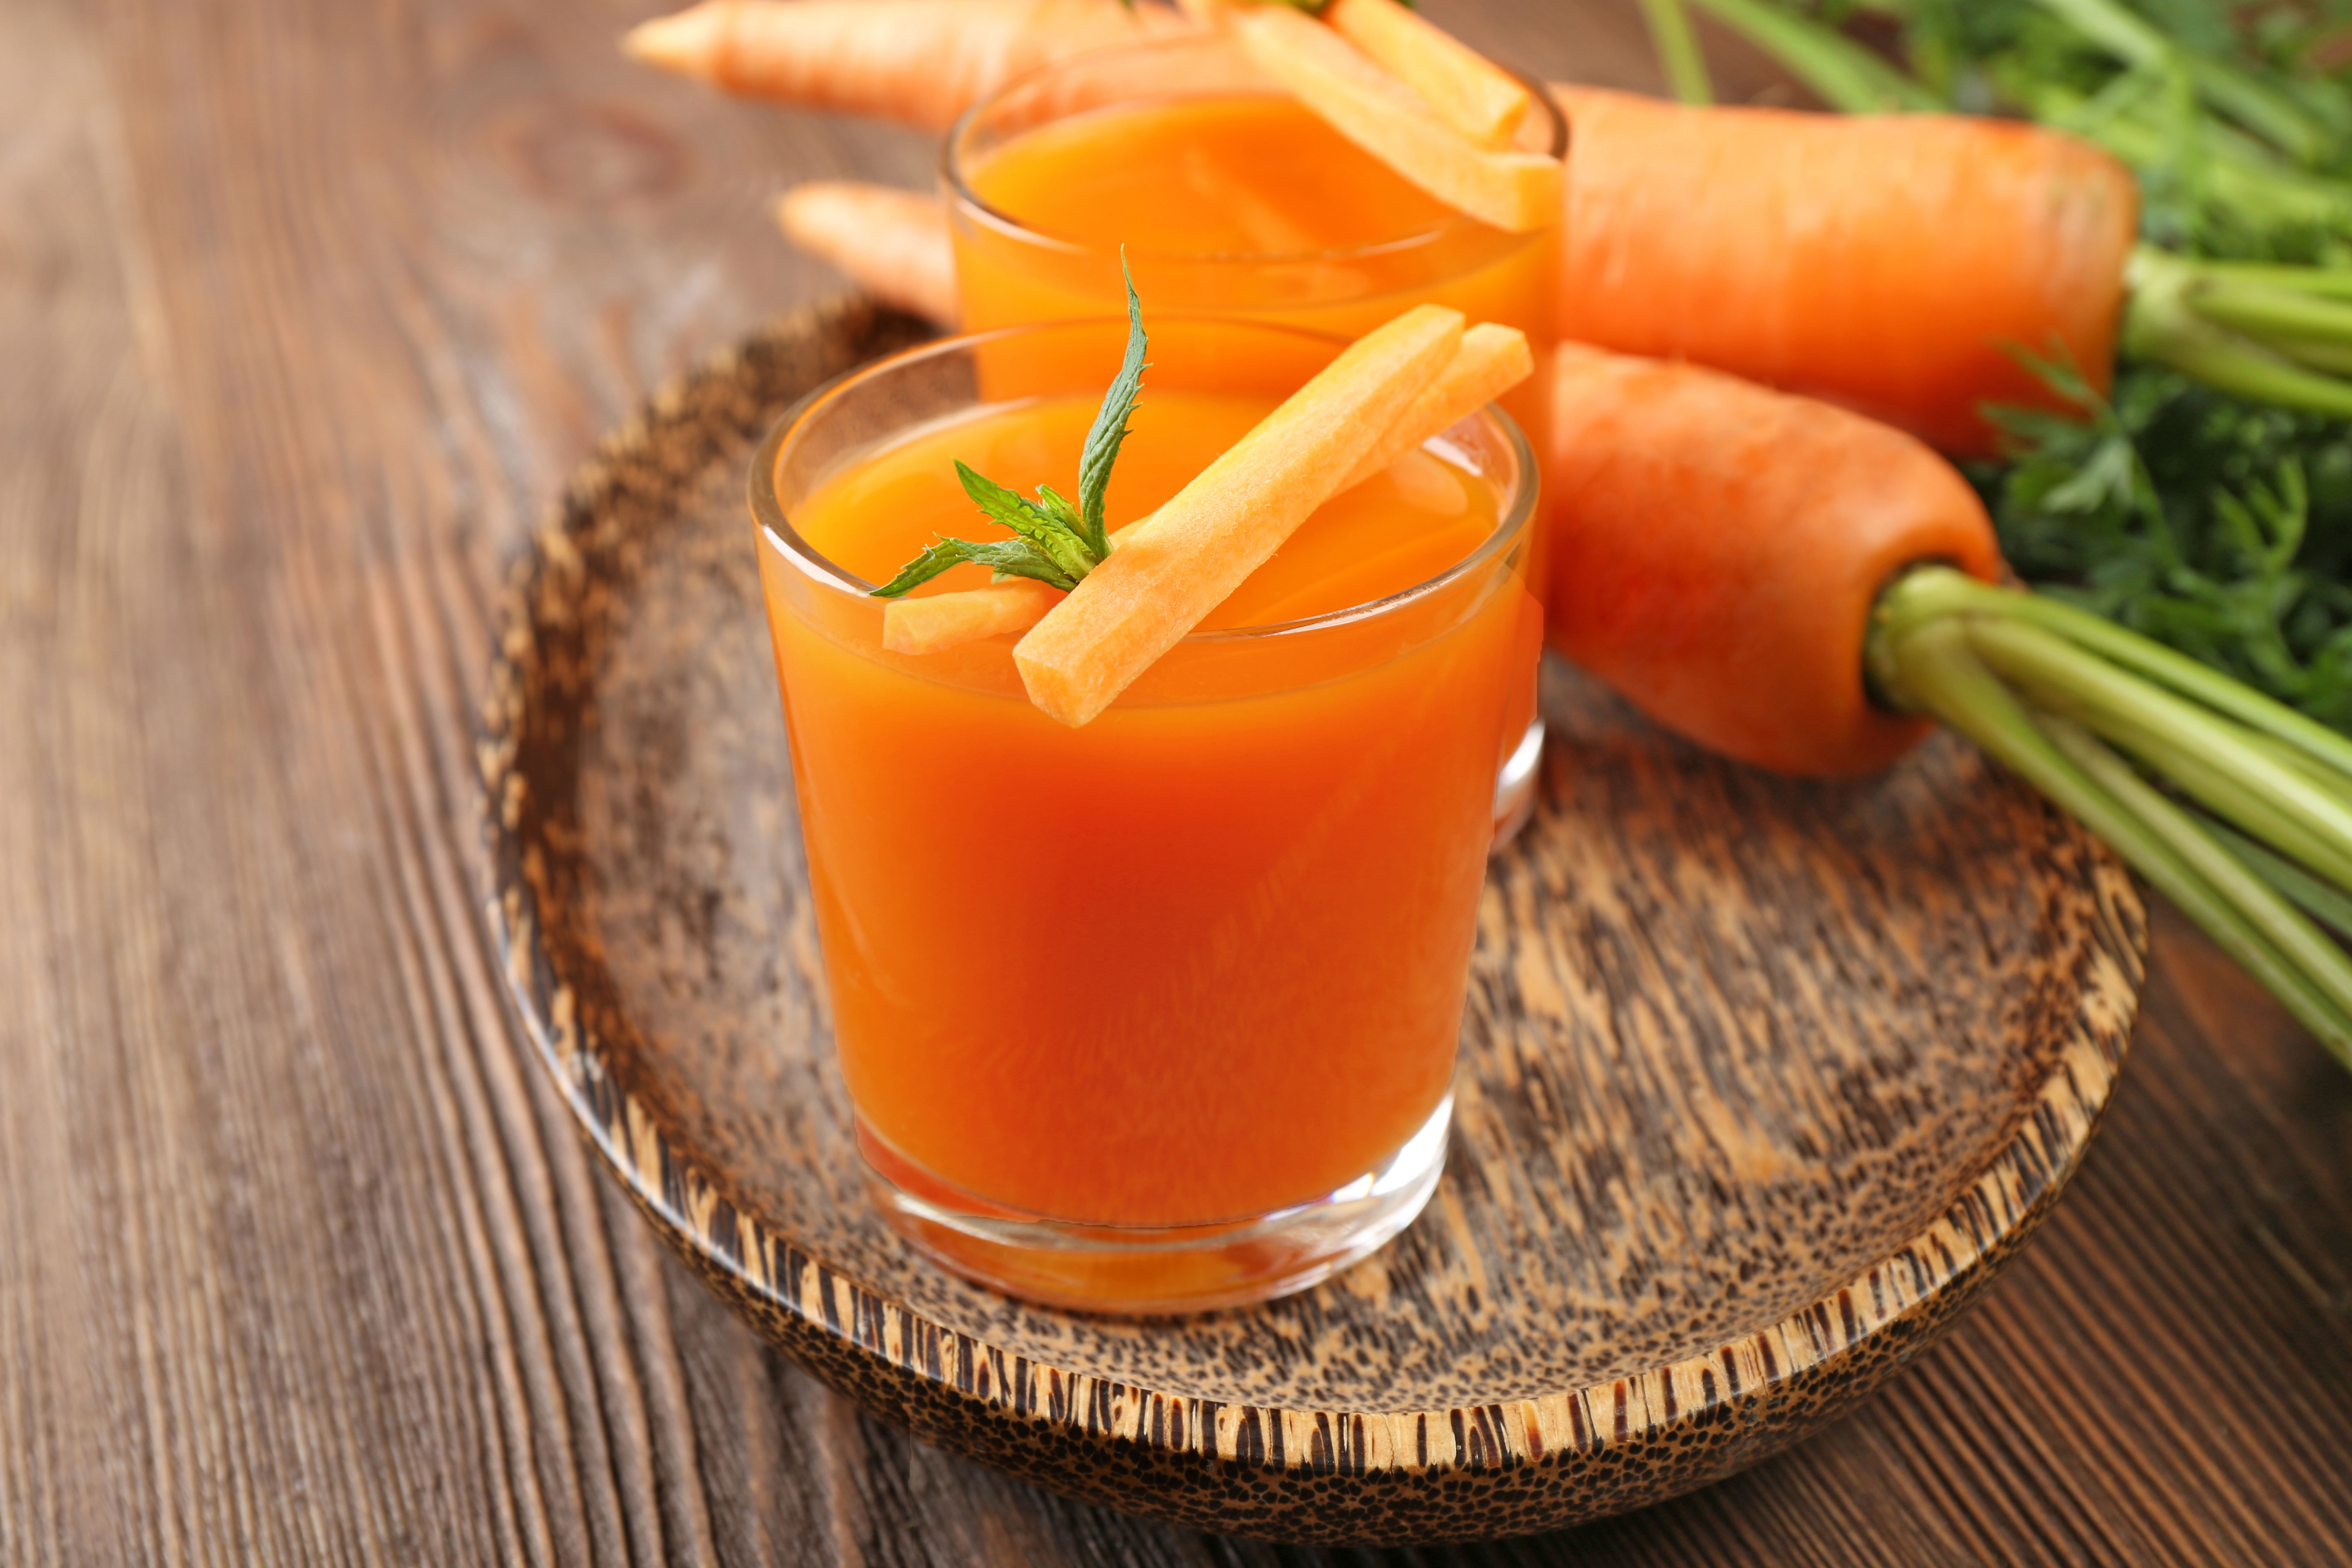 What Happens When You Drink Carrot Juice Daily